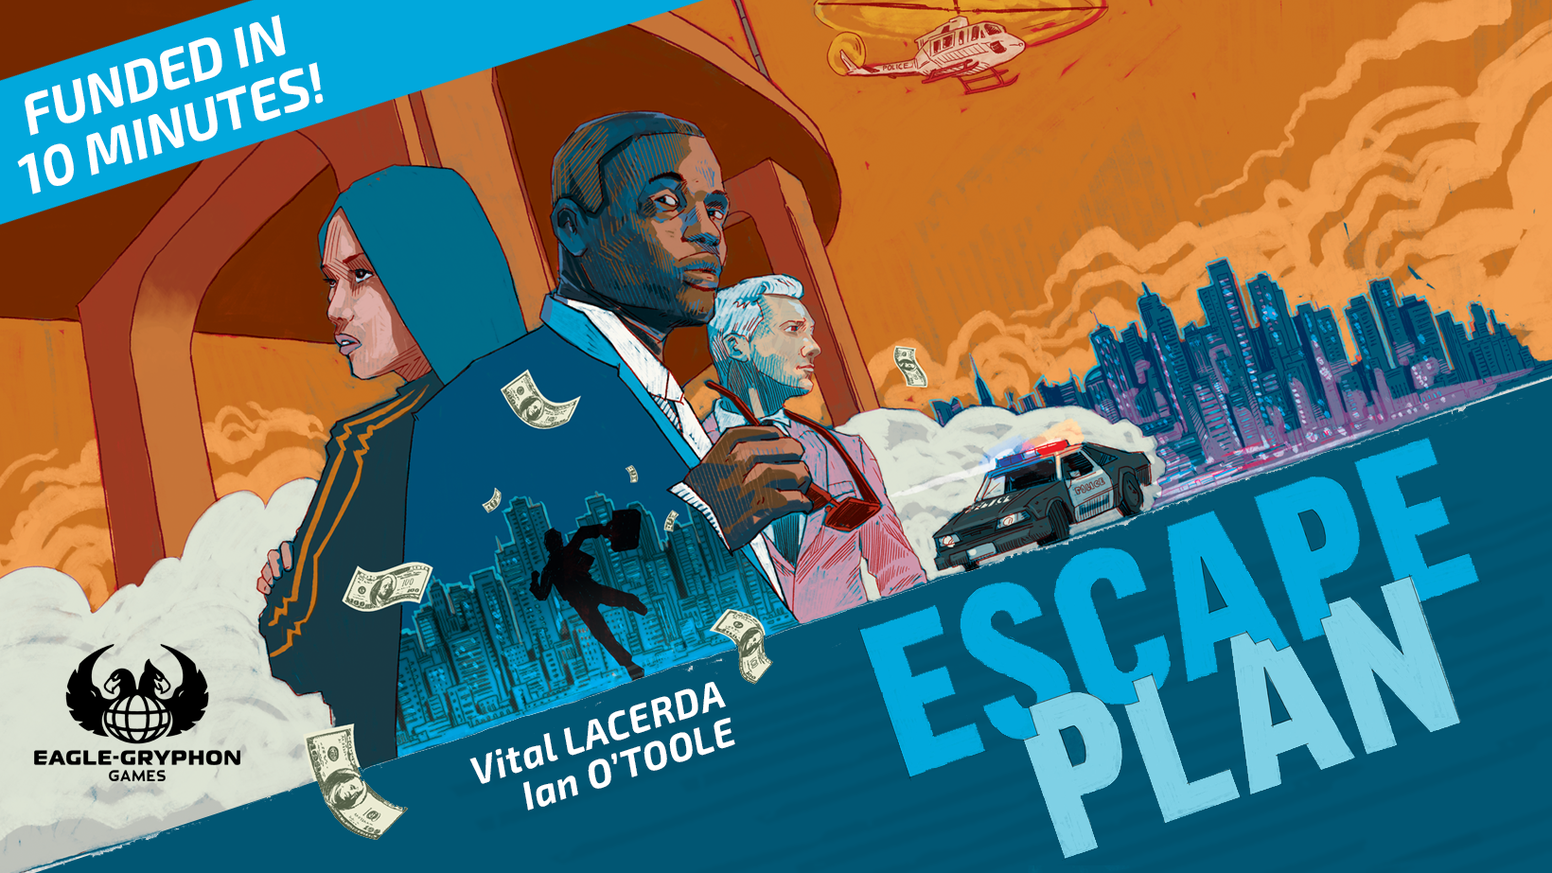 Plan your escape as you race against other players to regain stashed cash and flee the city in this new strategy game by Vital Lacerda.